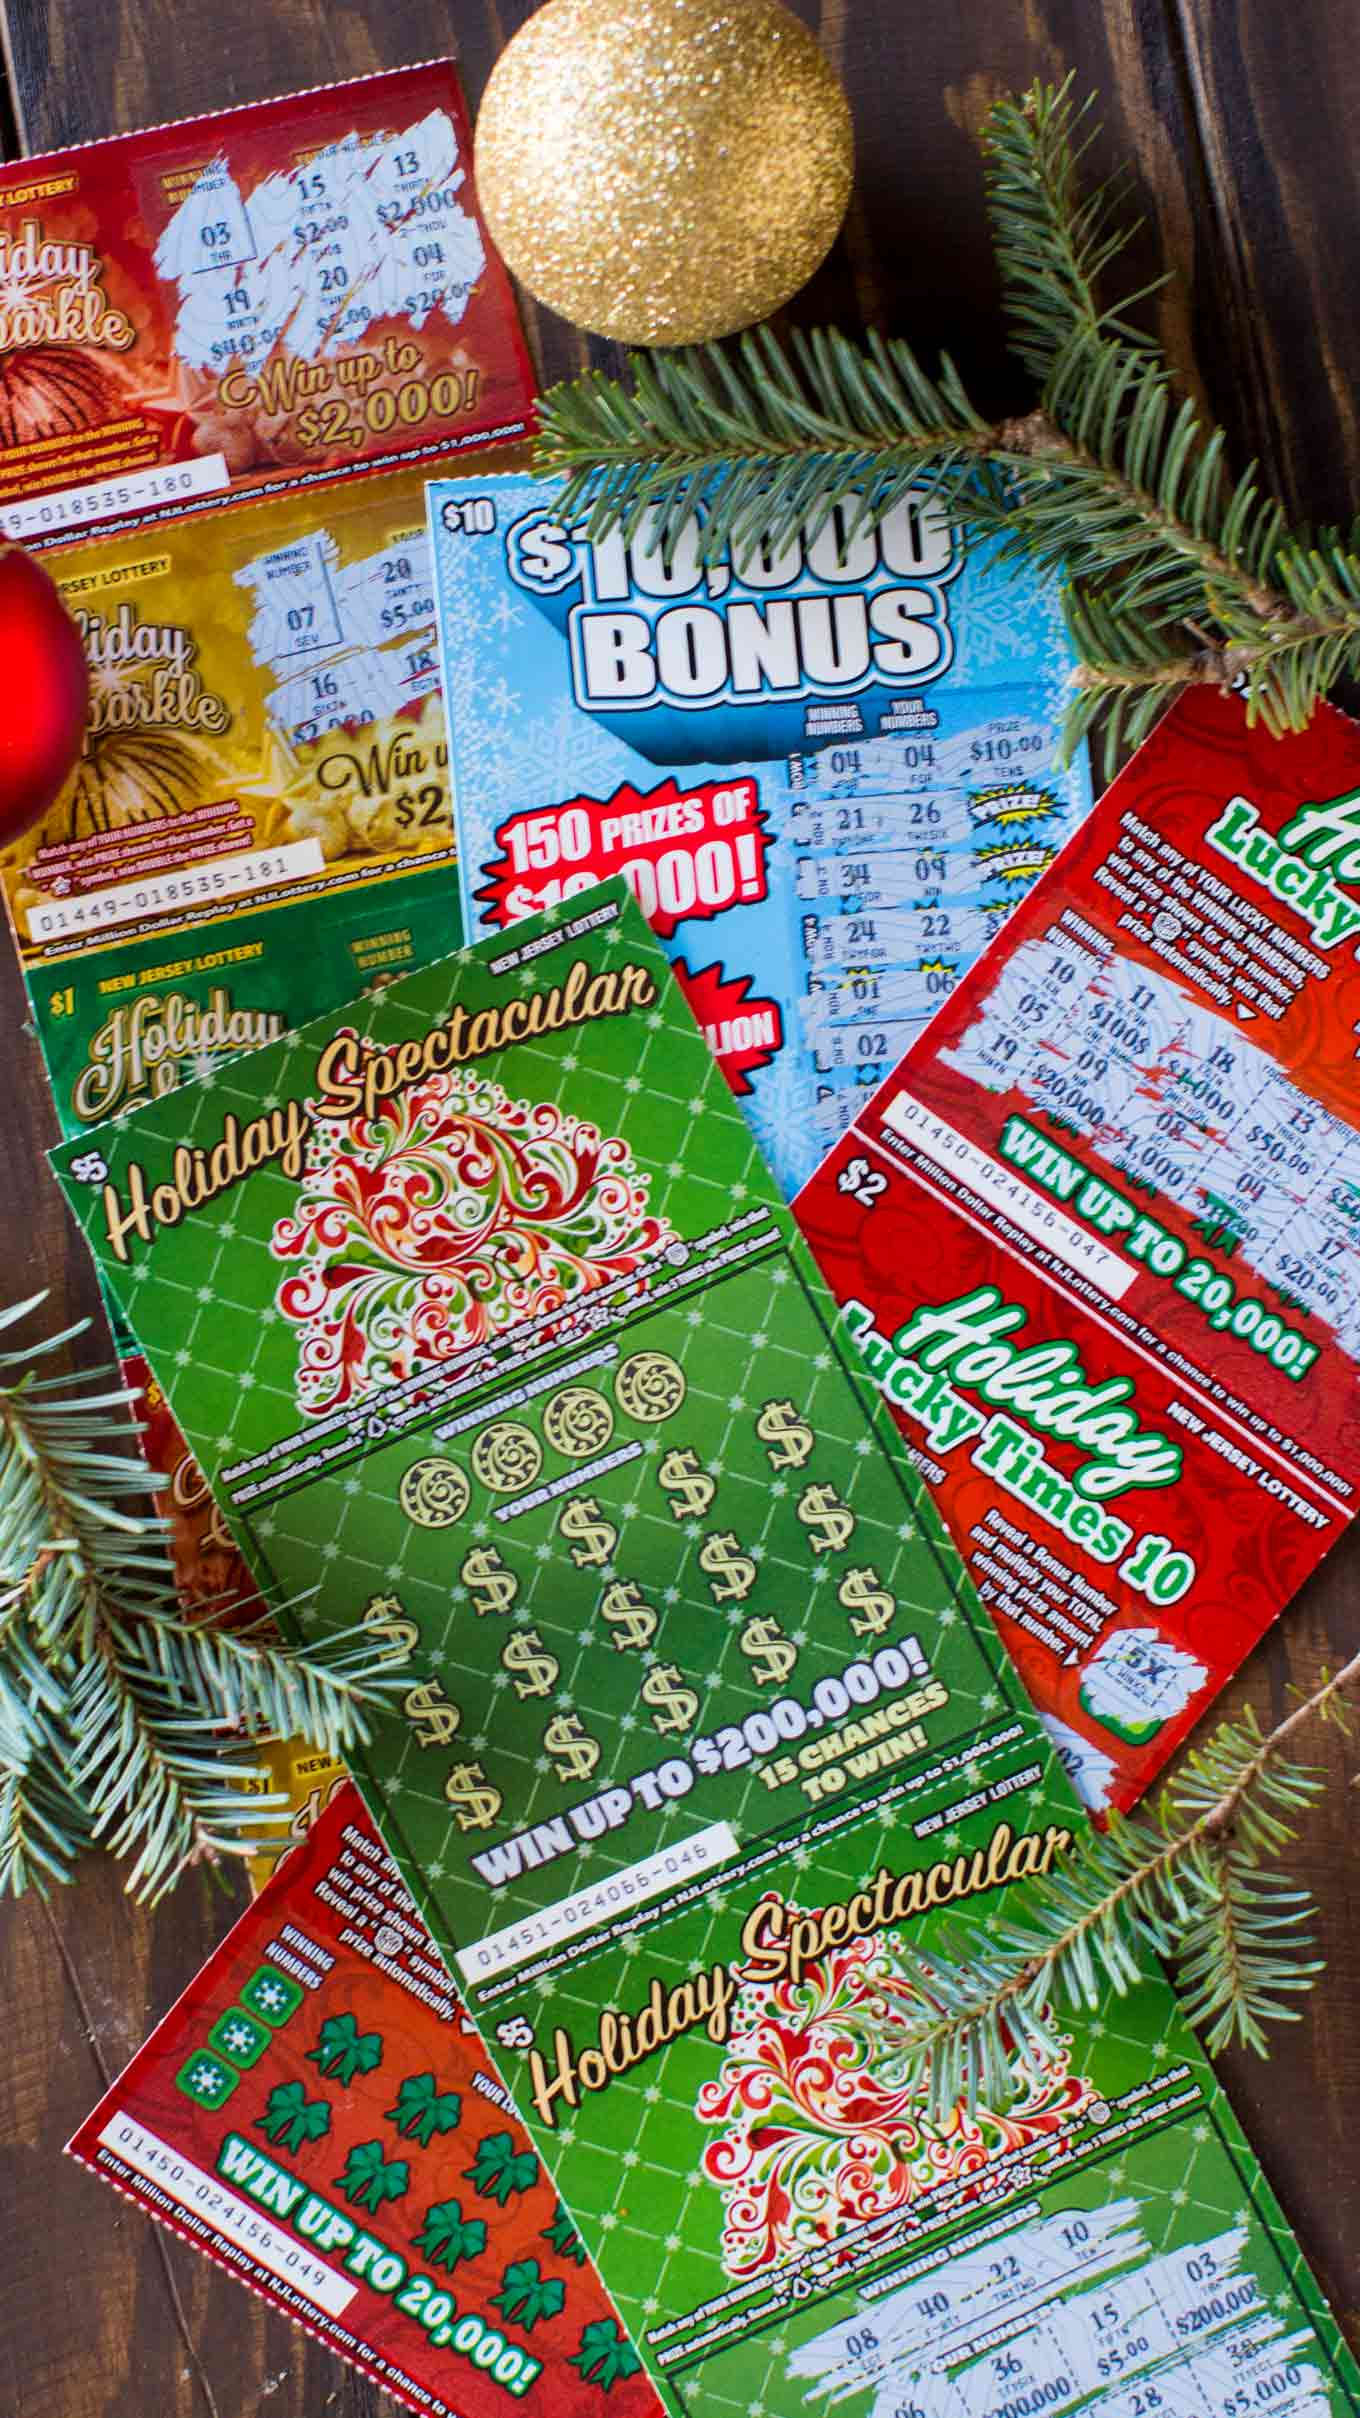 four Holiday themed Instant Games available for the Holiday season. With NJ Lottery tickets!